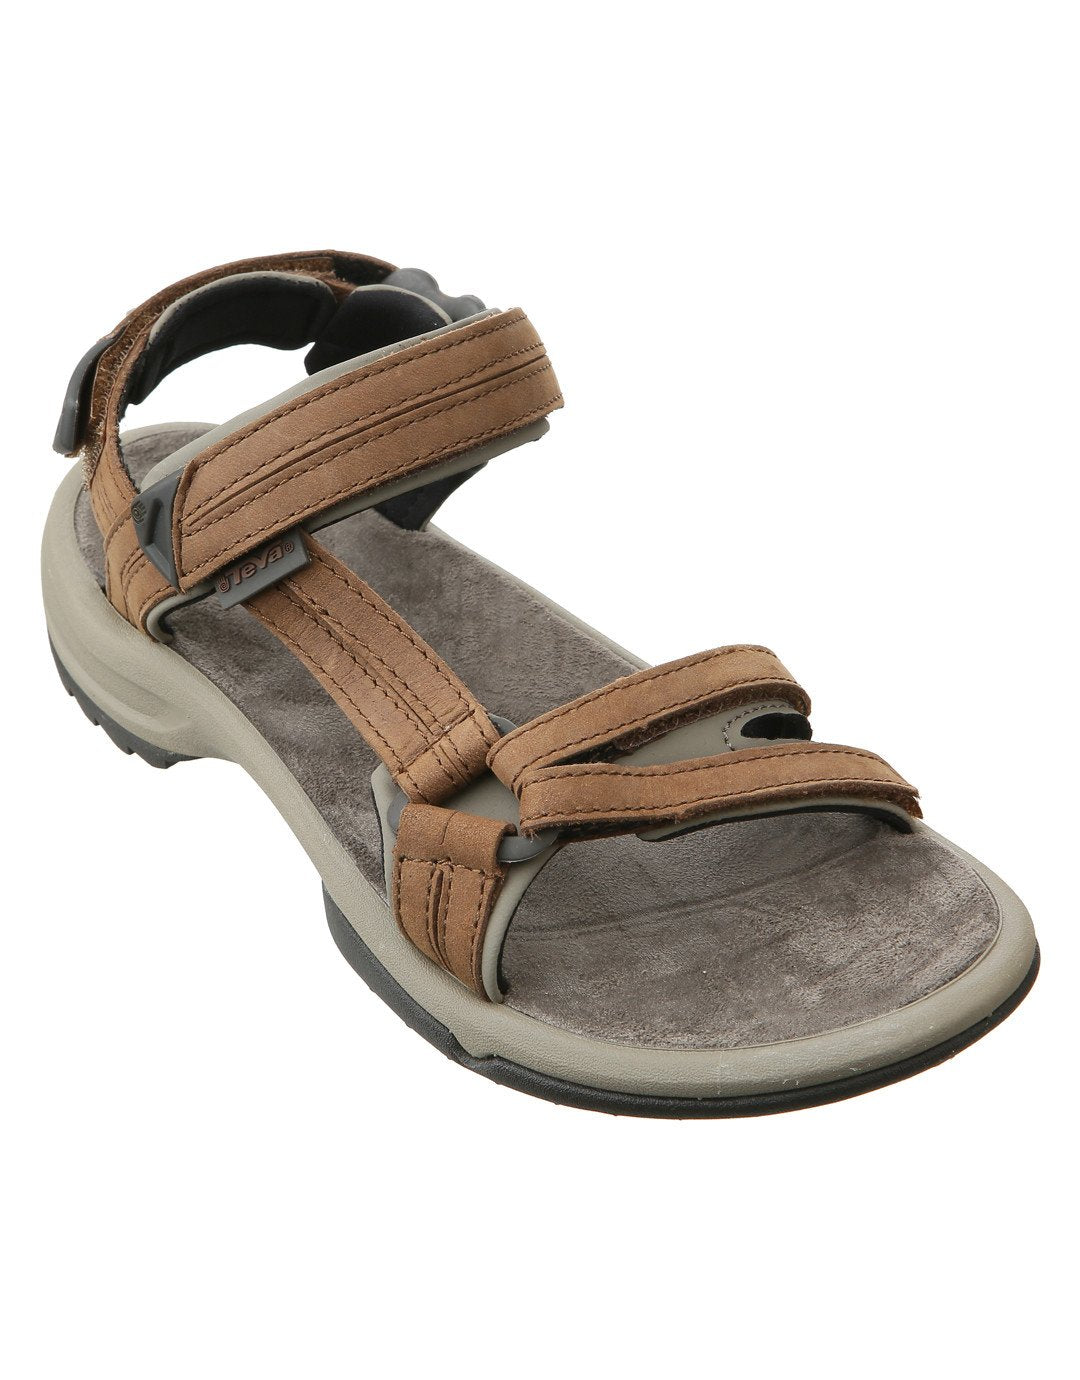 ac2901b10cc27c Teva Womens Terra Fi Lite Leather Sandal - Brown